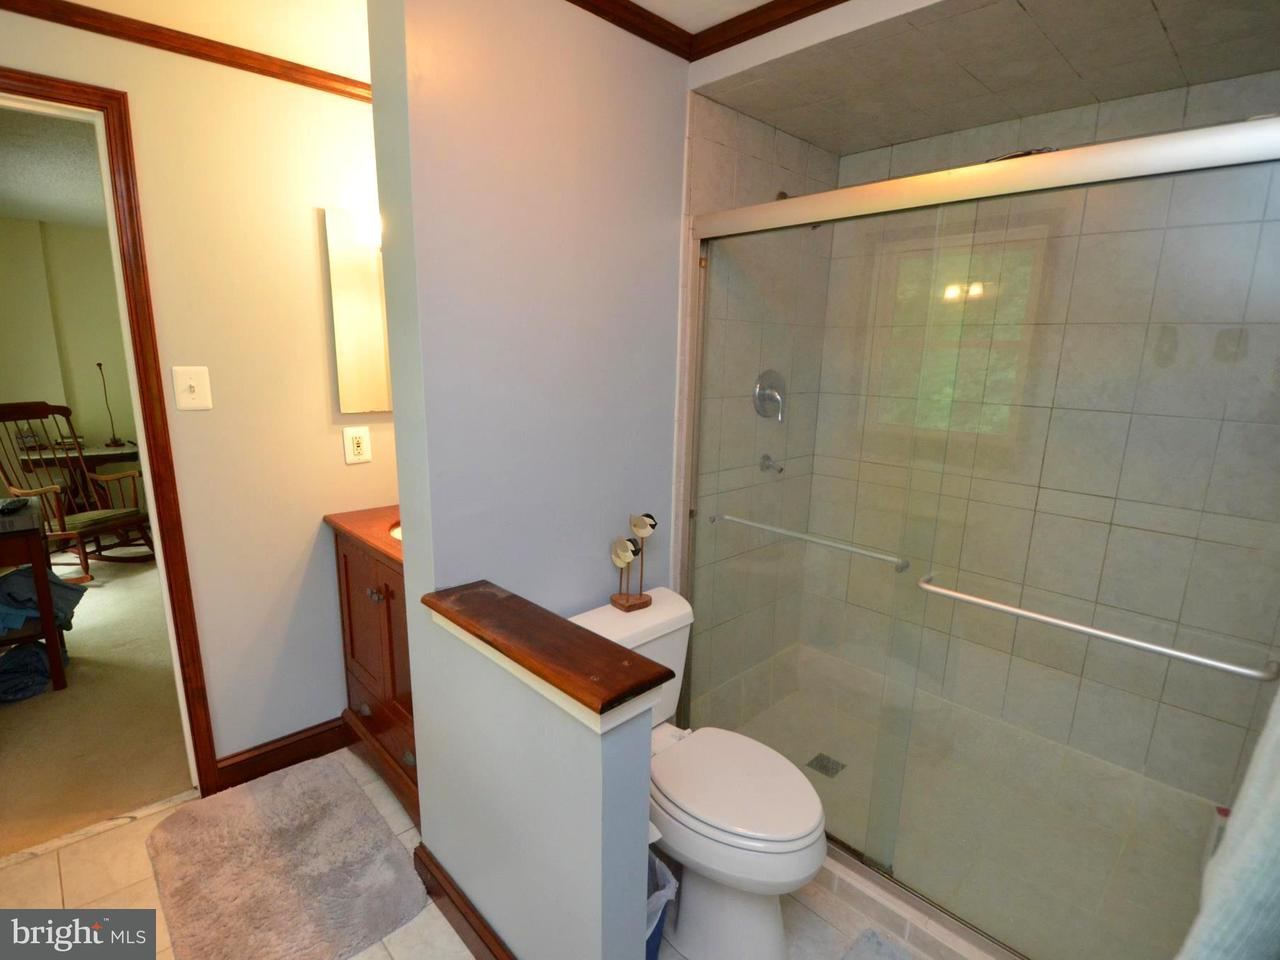 Additional photo for property listing at 11 Tracys Lane 11 Tracys Lane Tracys Landing, 马里兰州 20779 美国